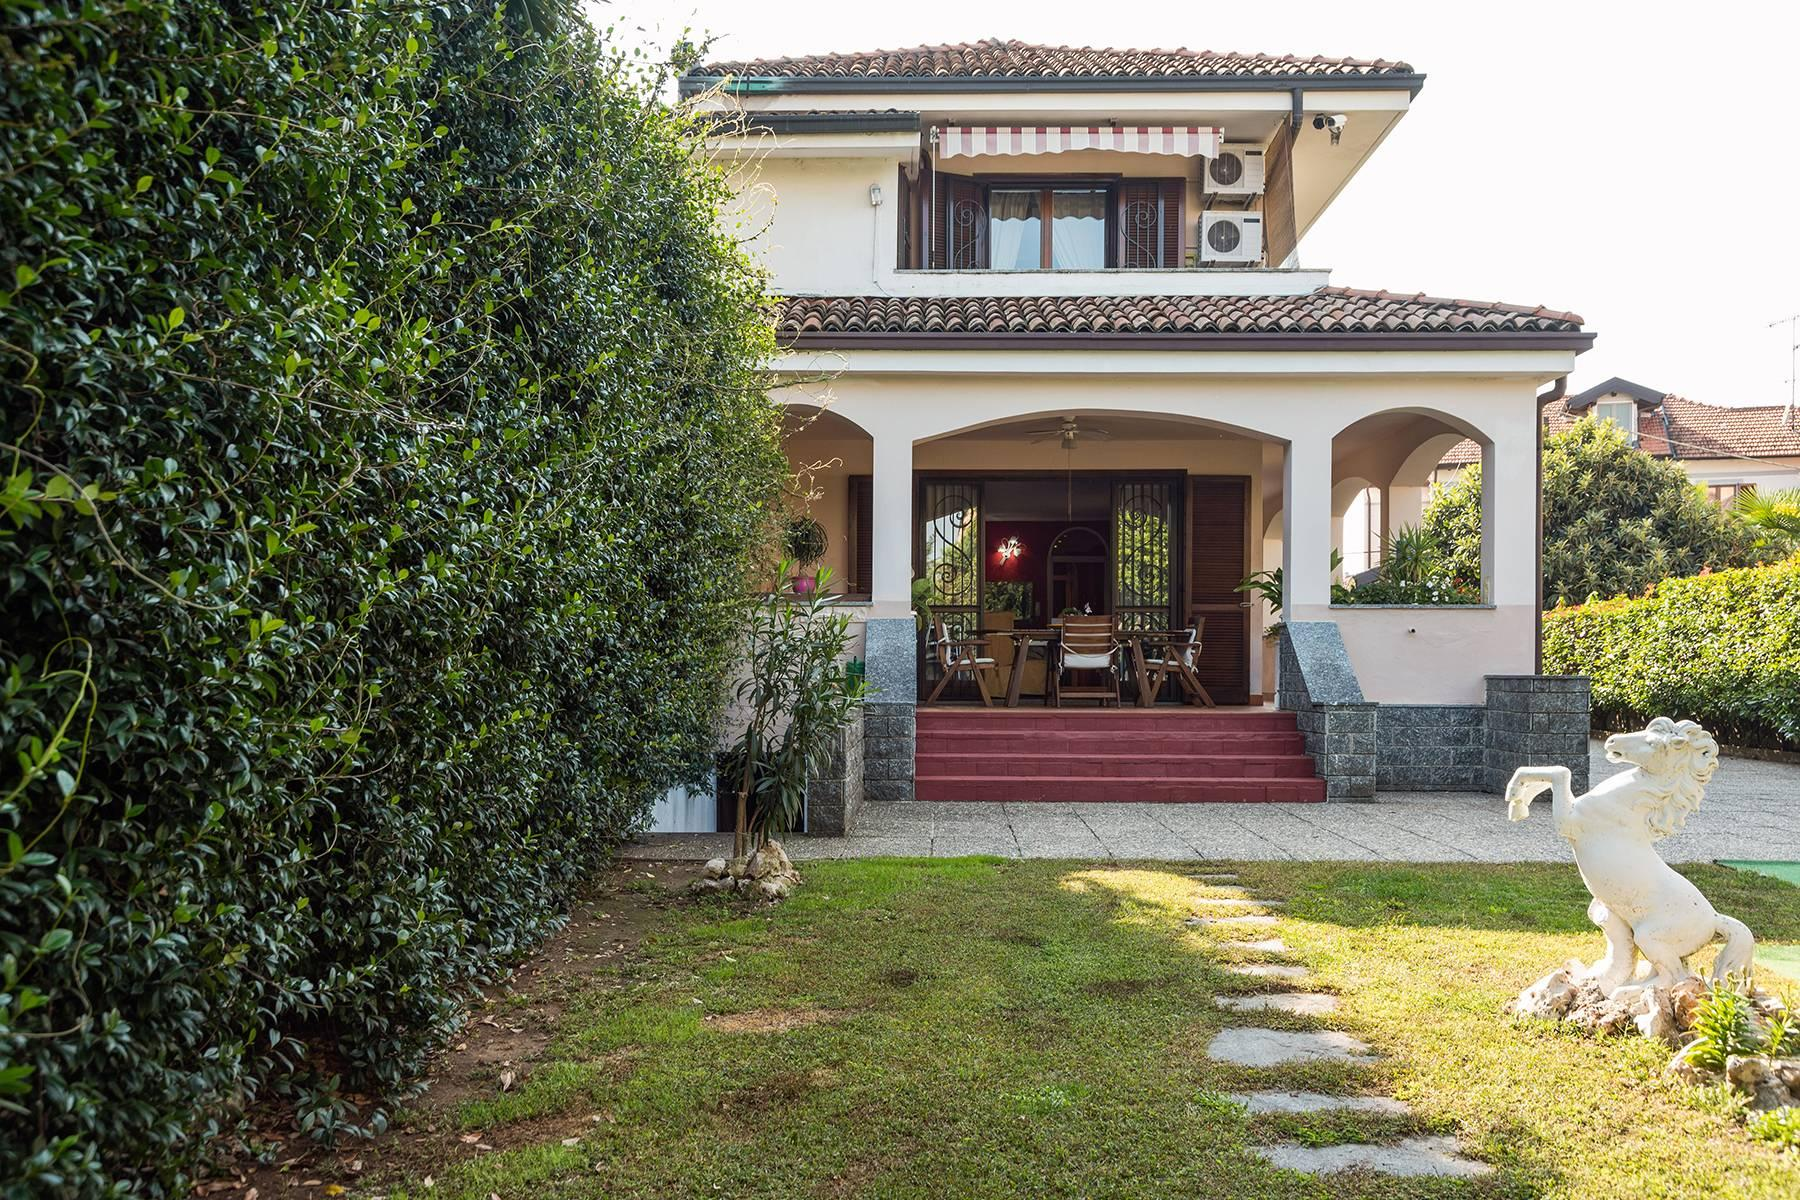 Independent villa a few steps from the heart of Arona - 2